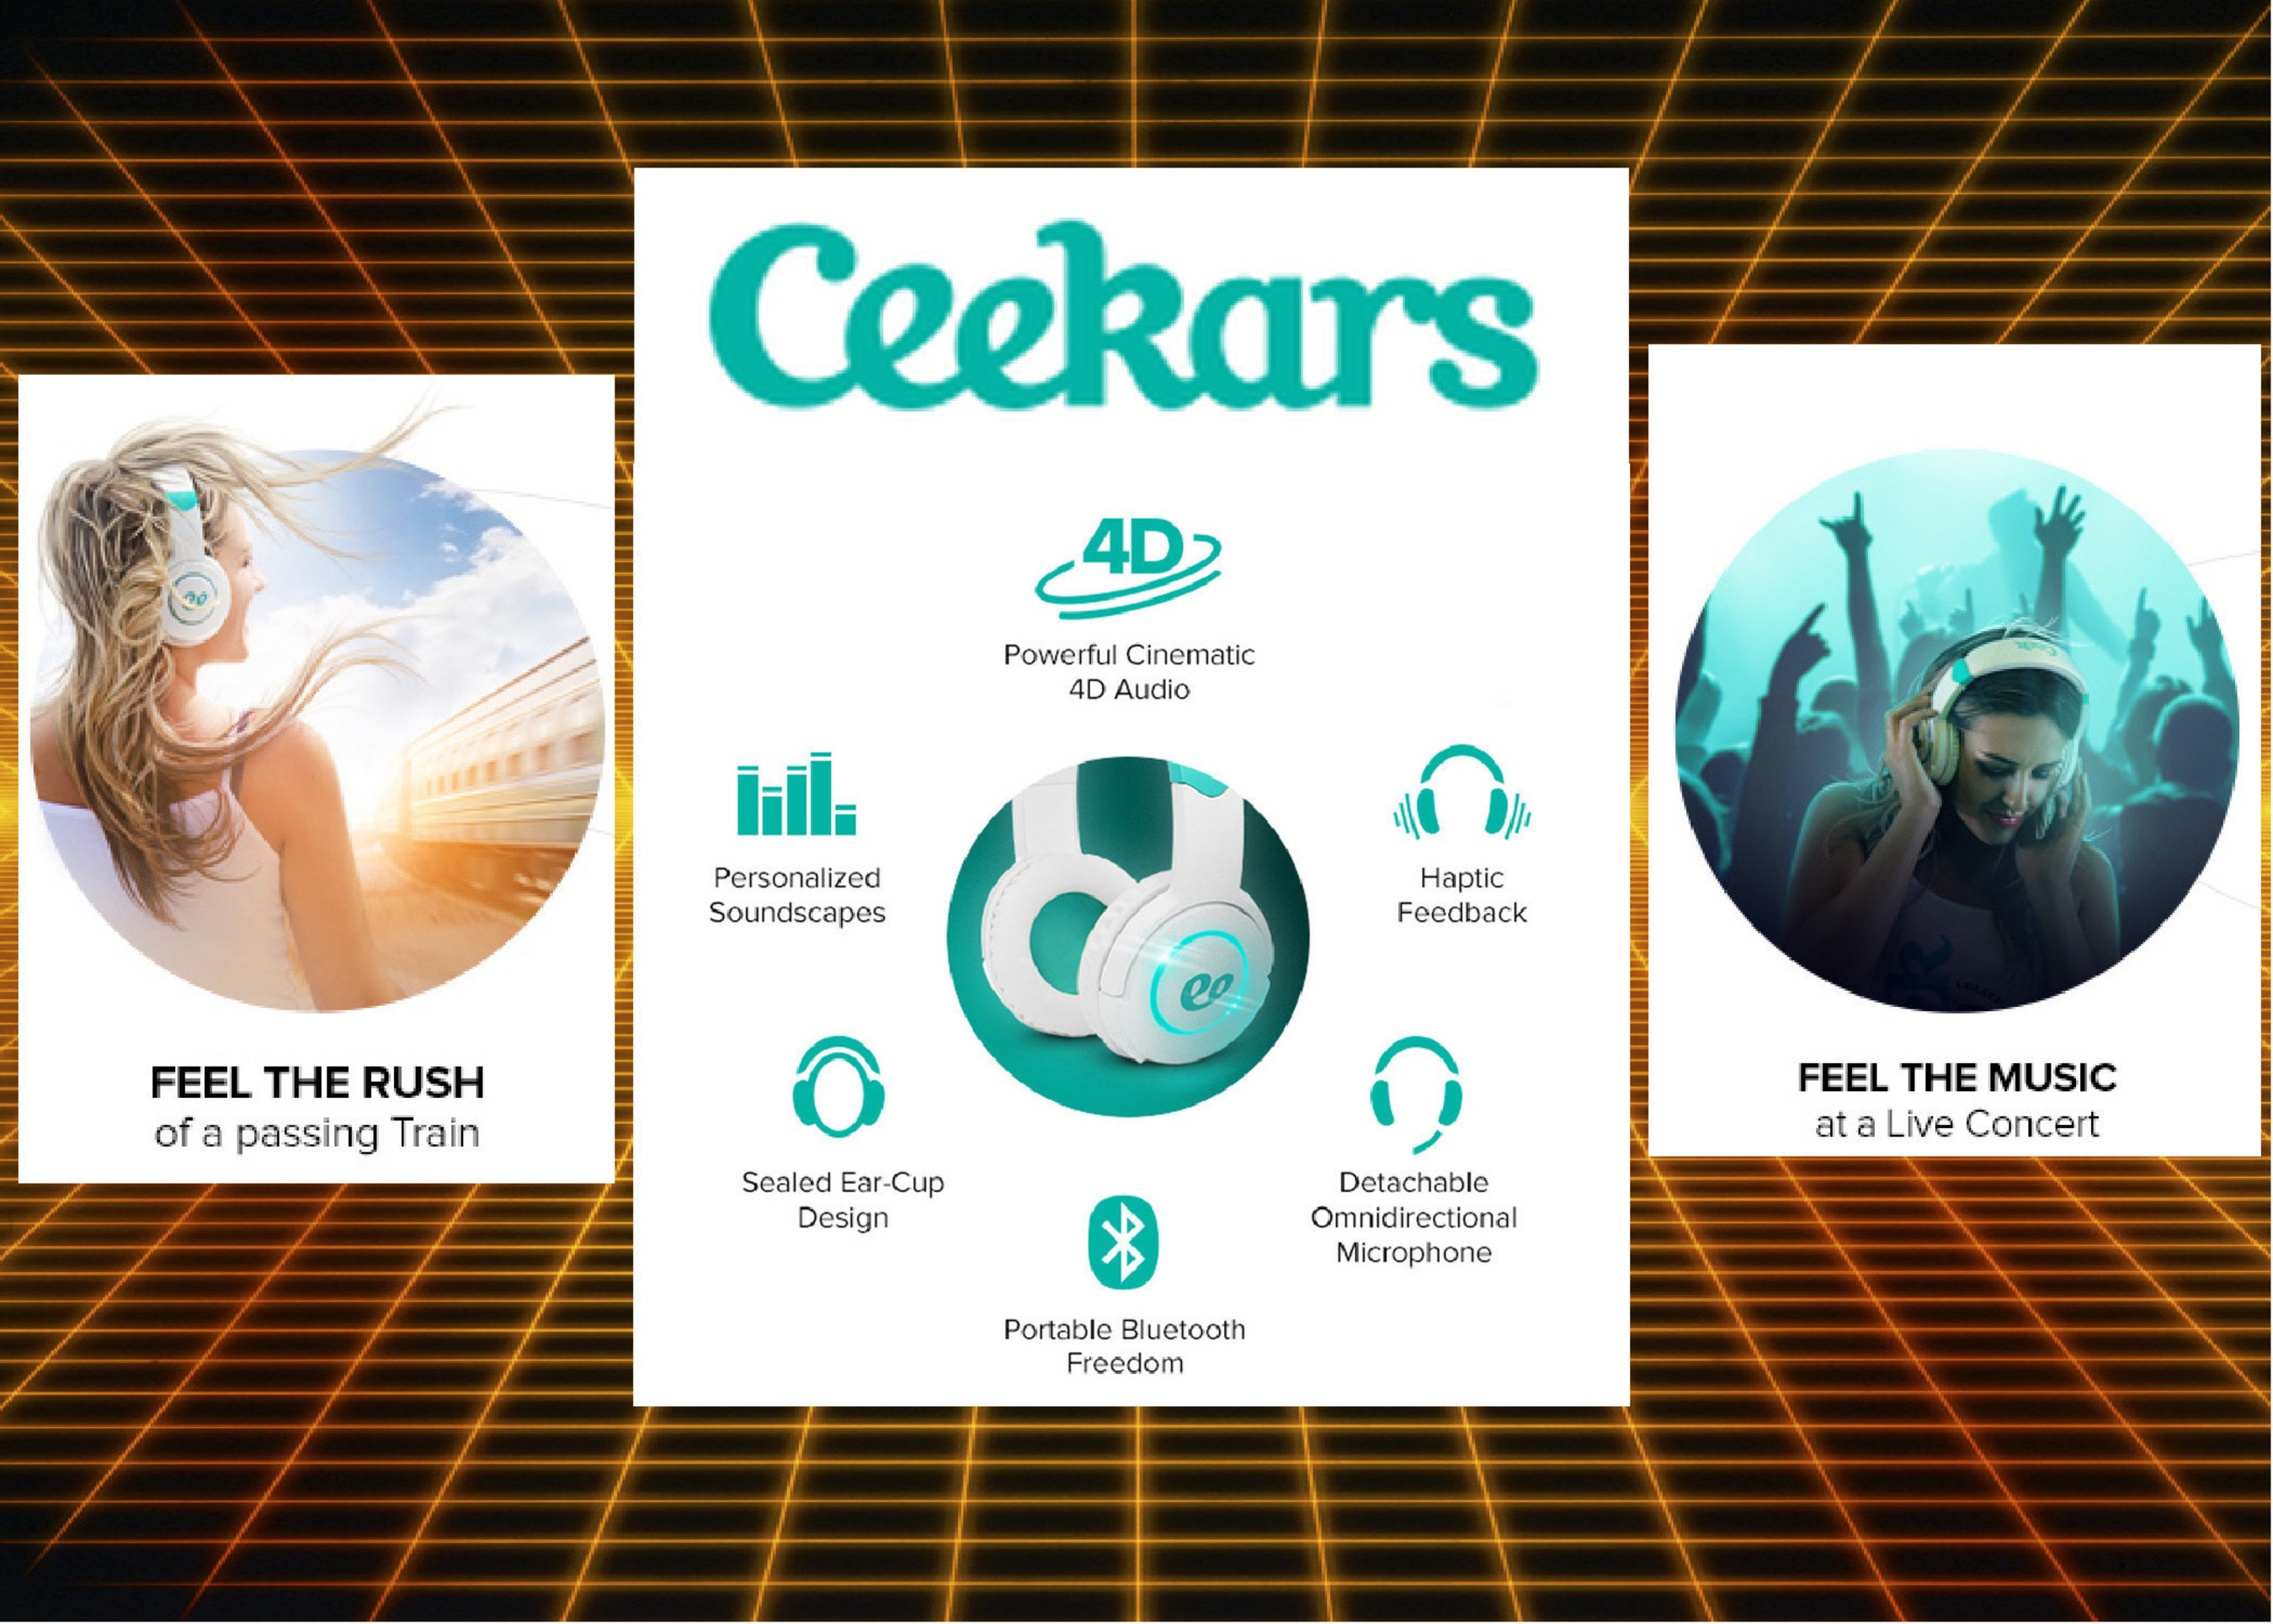 CEEKARS Turns Sound Into a Complete Sensory Experience